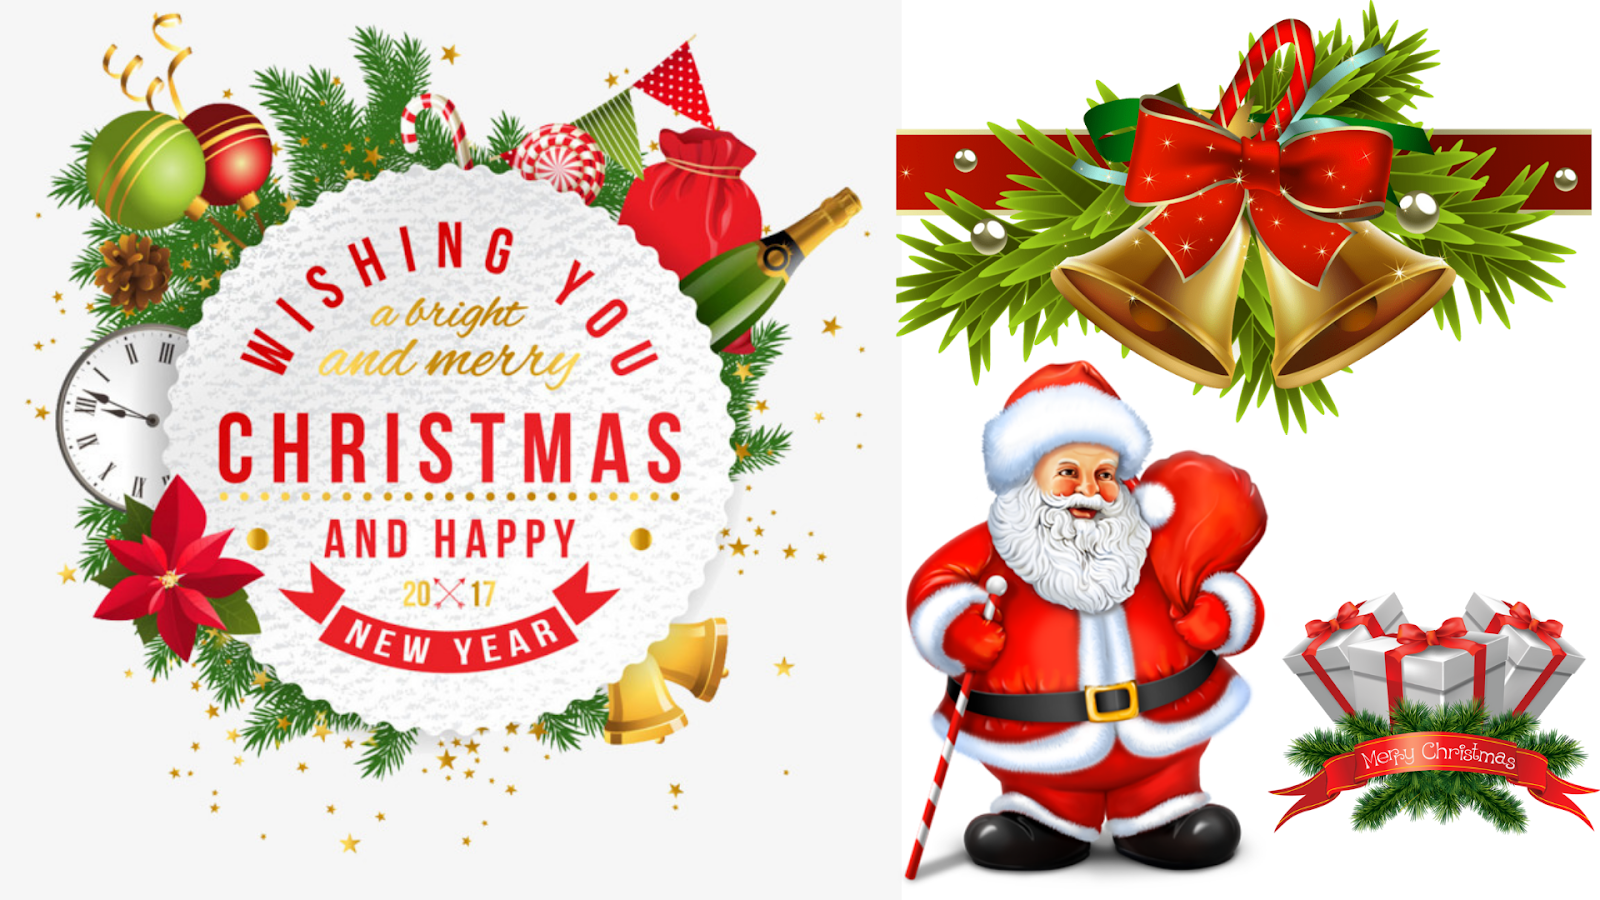 Merry Christmas Day Advance Wishes Images, Picture, Greeting, Sms